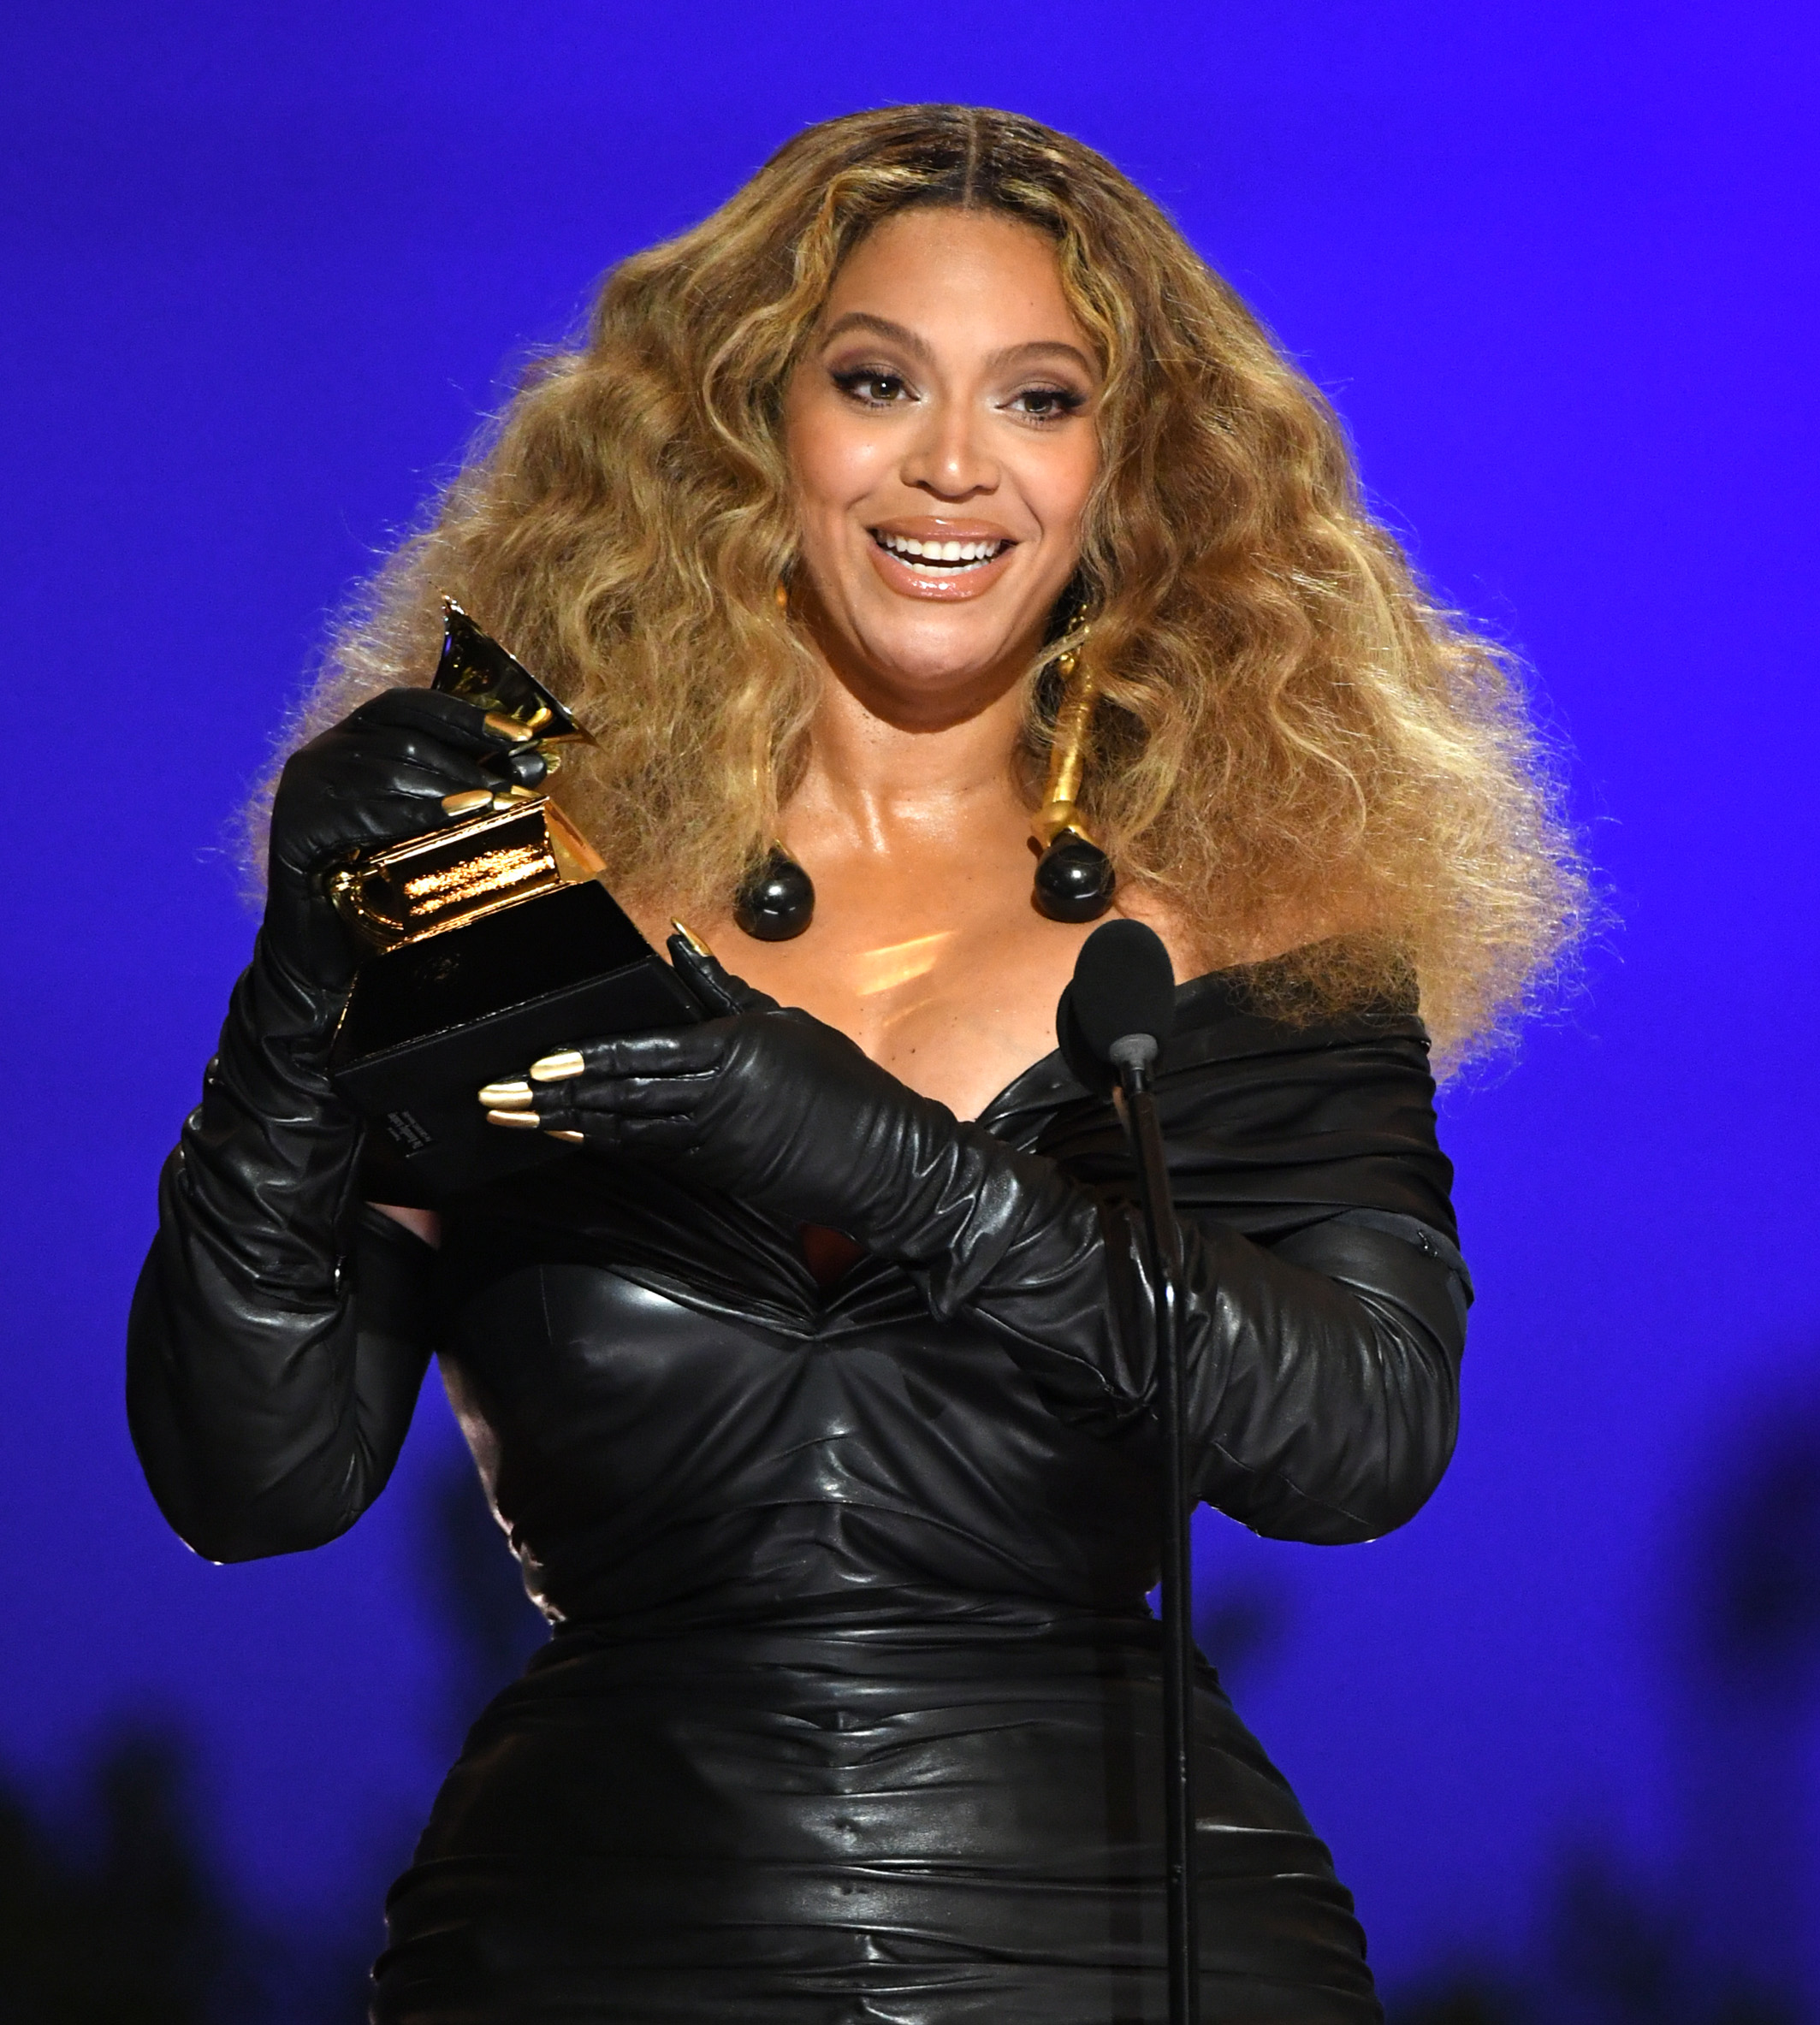 Beyonce at the 2021 Grammys.